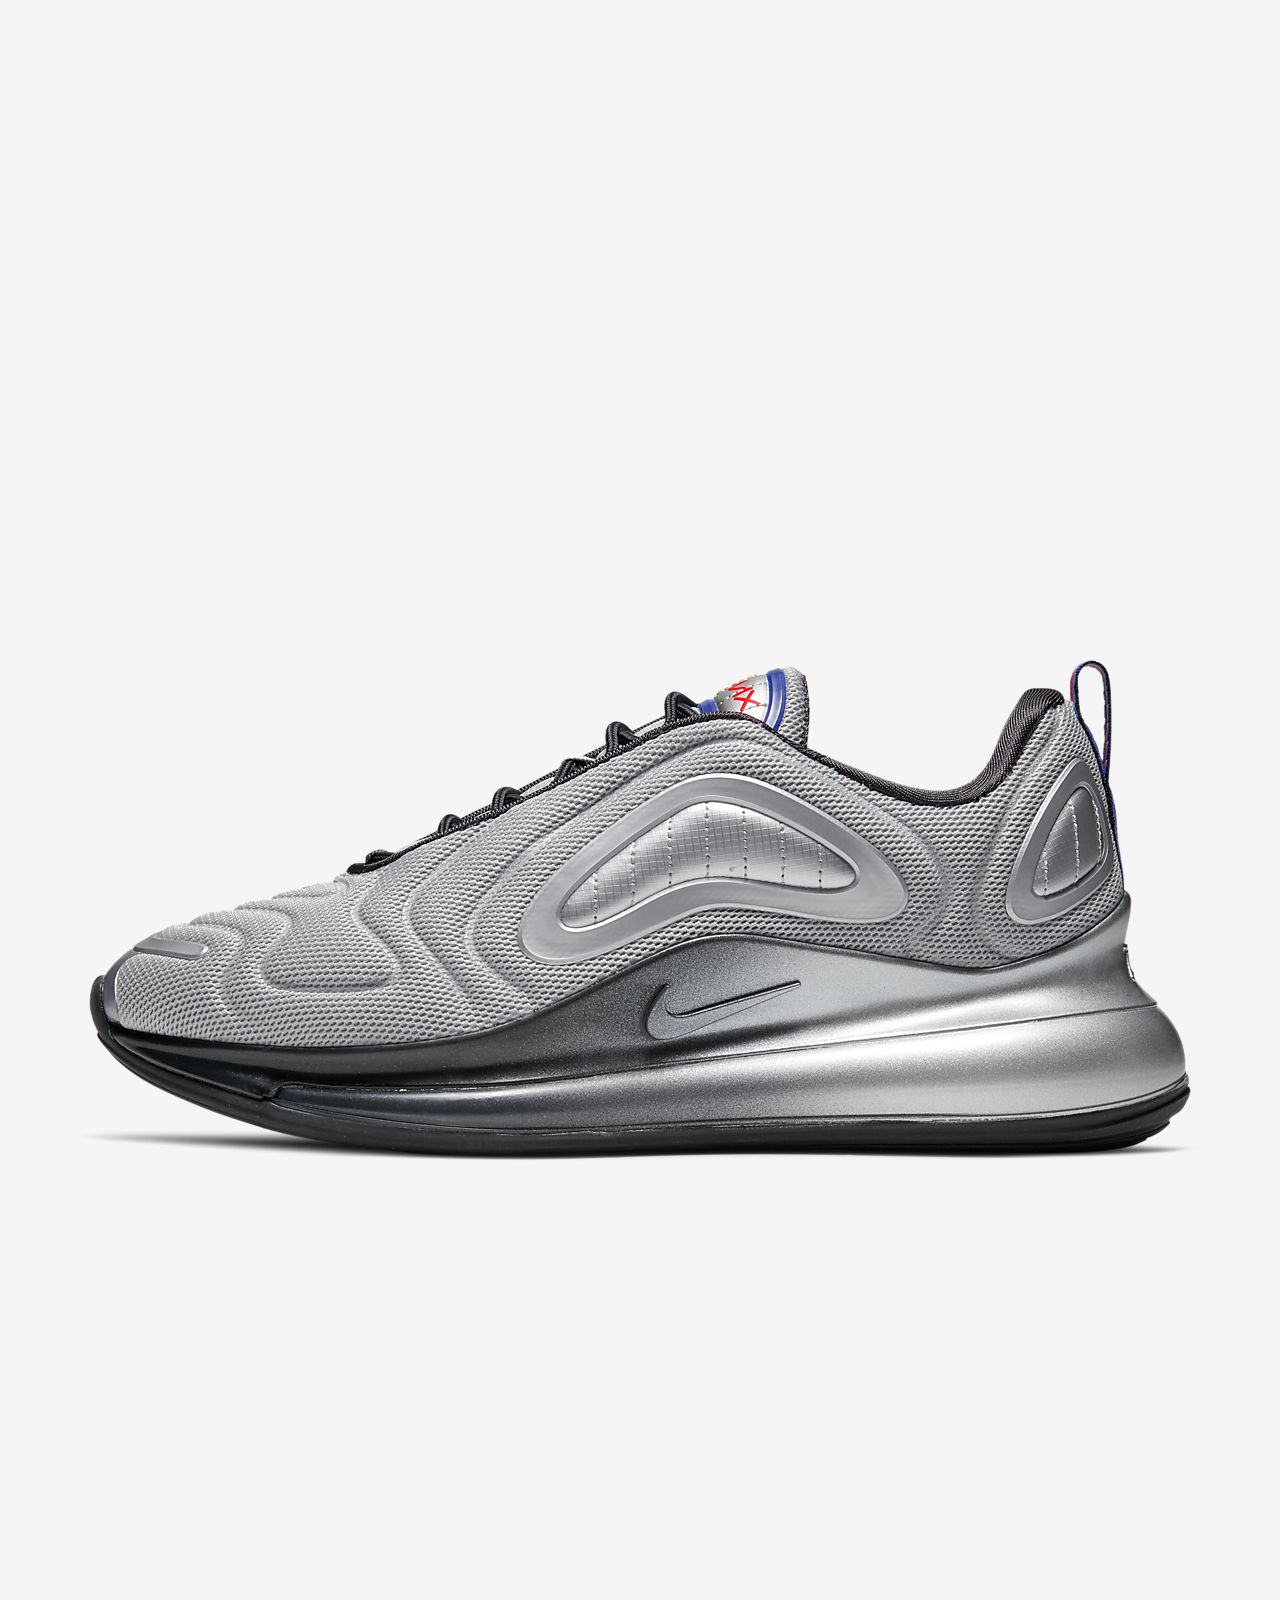 Latest Nike Air Max Shoes for Men Cheap Price March 2020 in